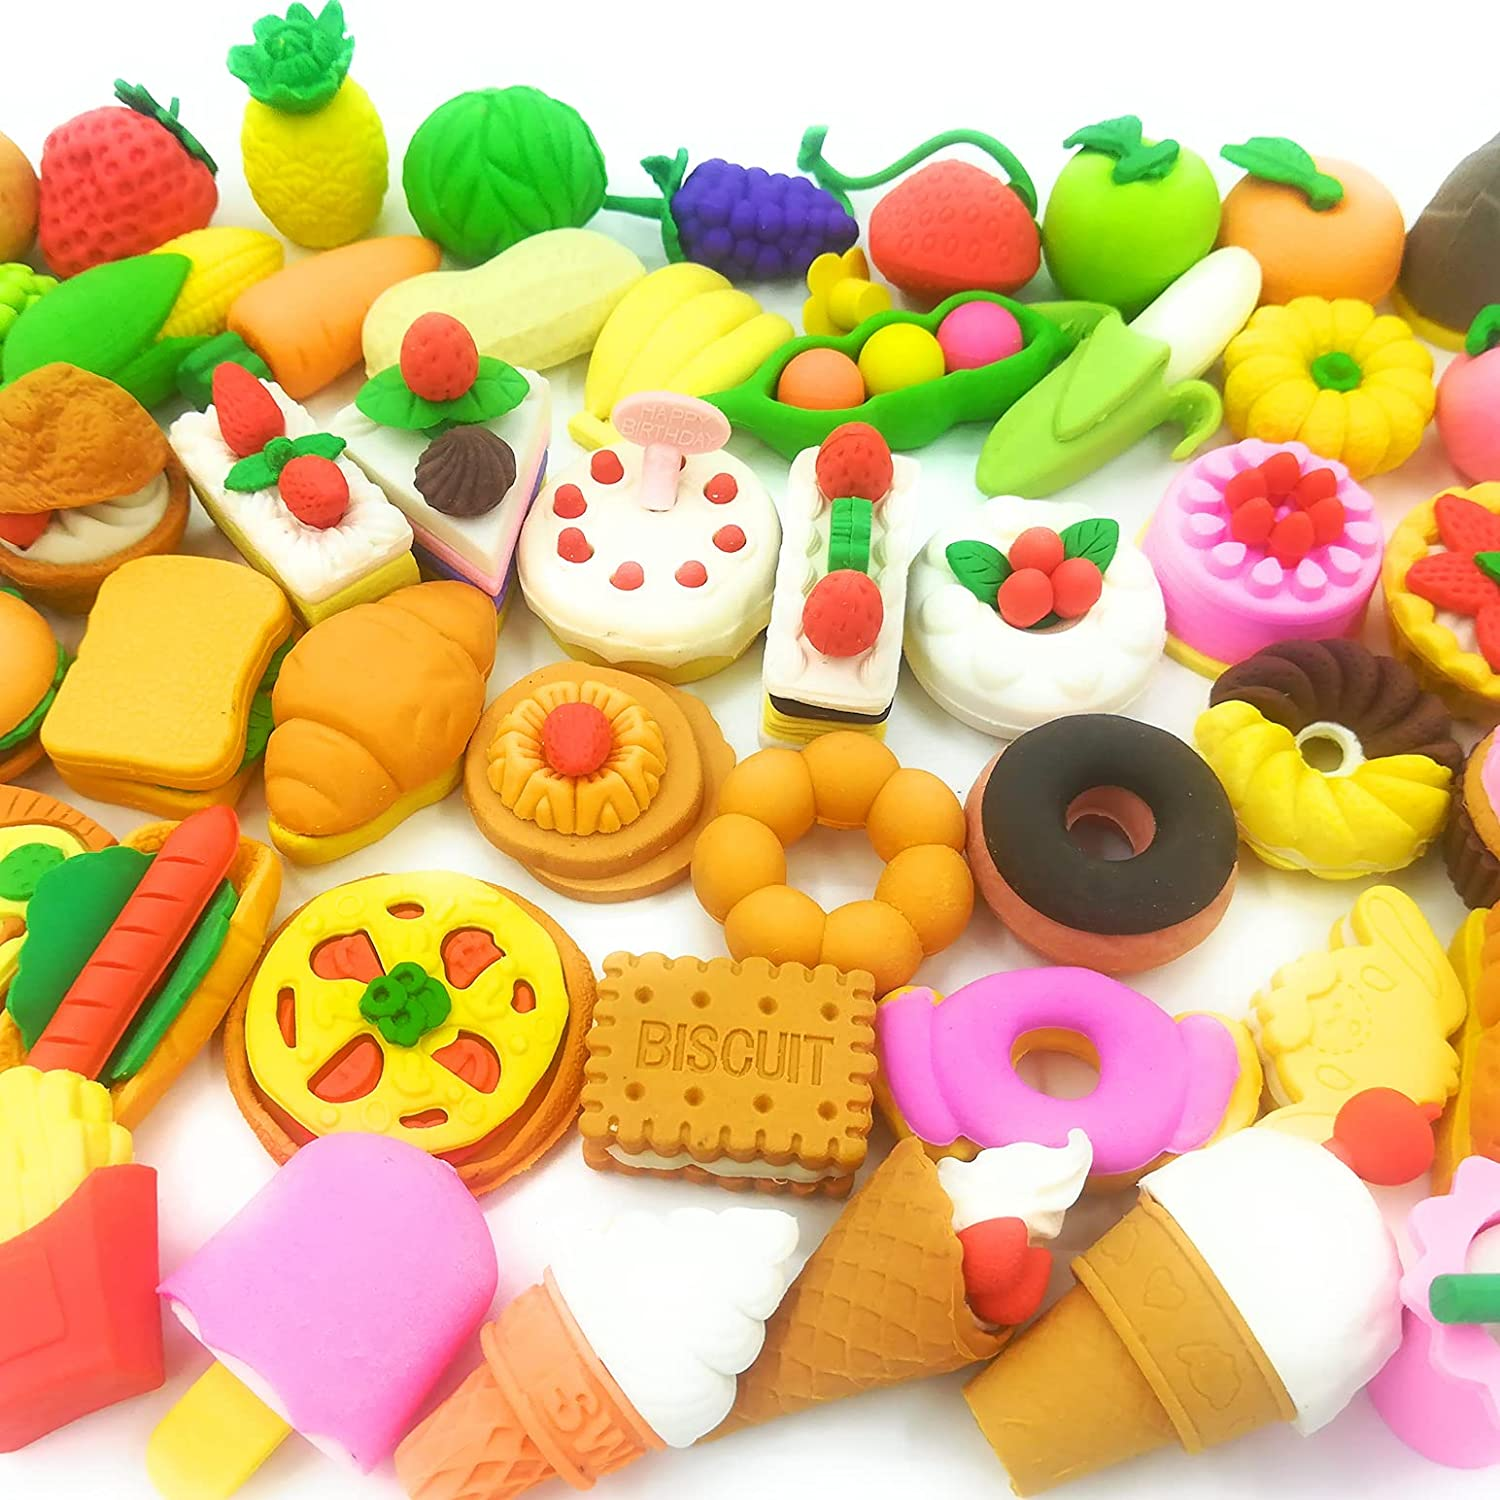 Food Erasers OHill Pack of 46 Pencil Erasers for Kids Pull Apart 3D Mini Erasers Assorted Food Cake Dessert Puzzle Erasers for Birthday Party Supplies Favors, School Classroom Rewards and Novelty Toys